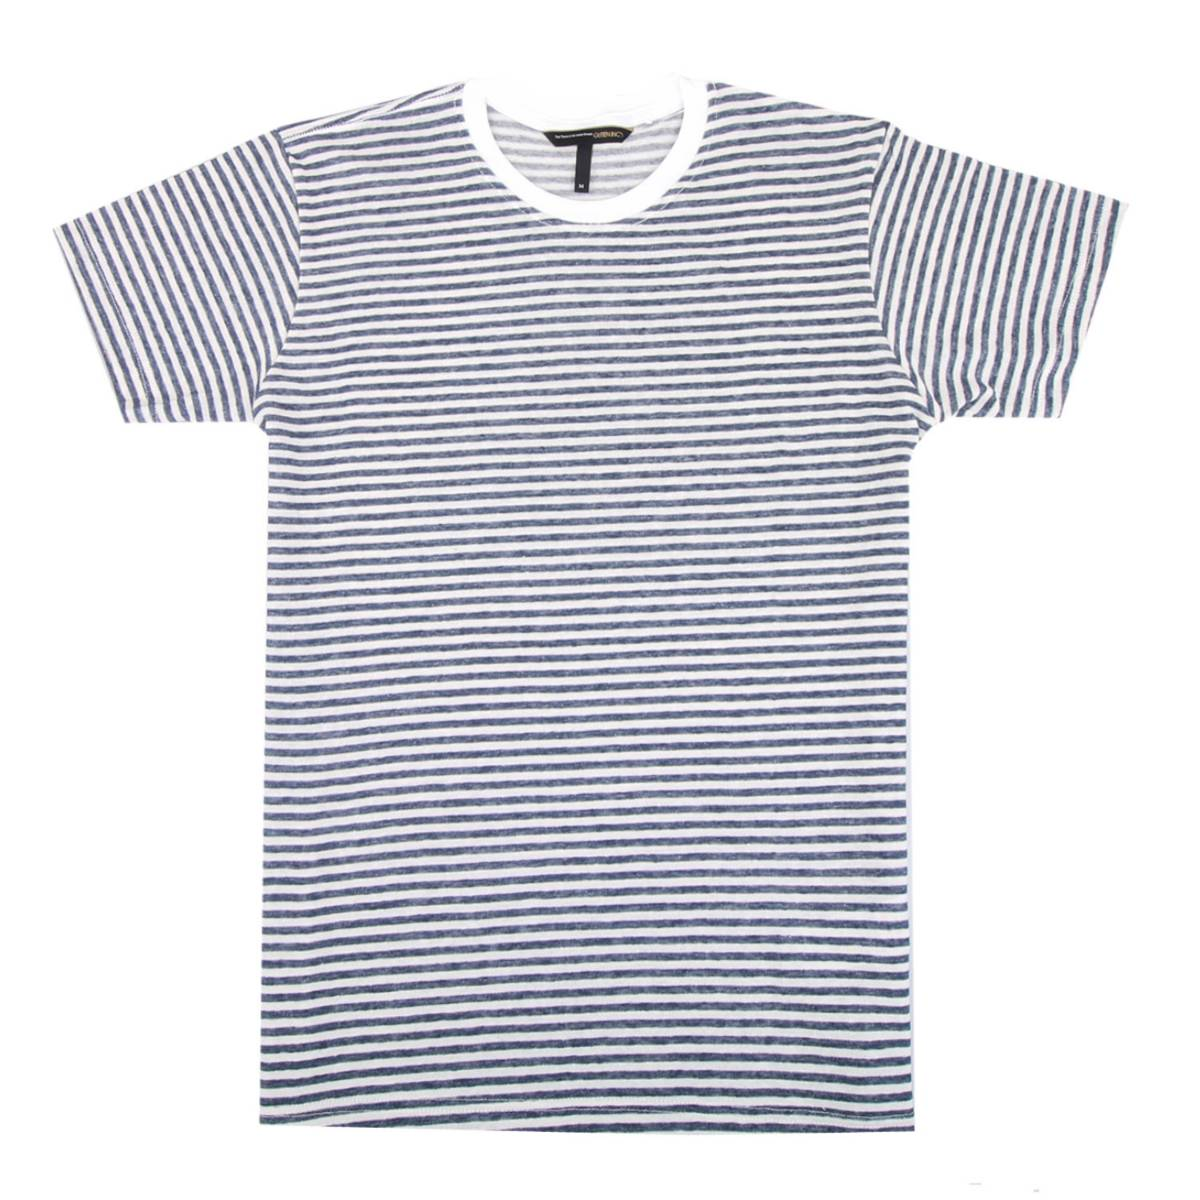 Kaos / Chester White Dark Blue Stripe